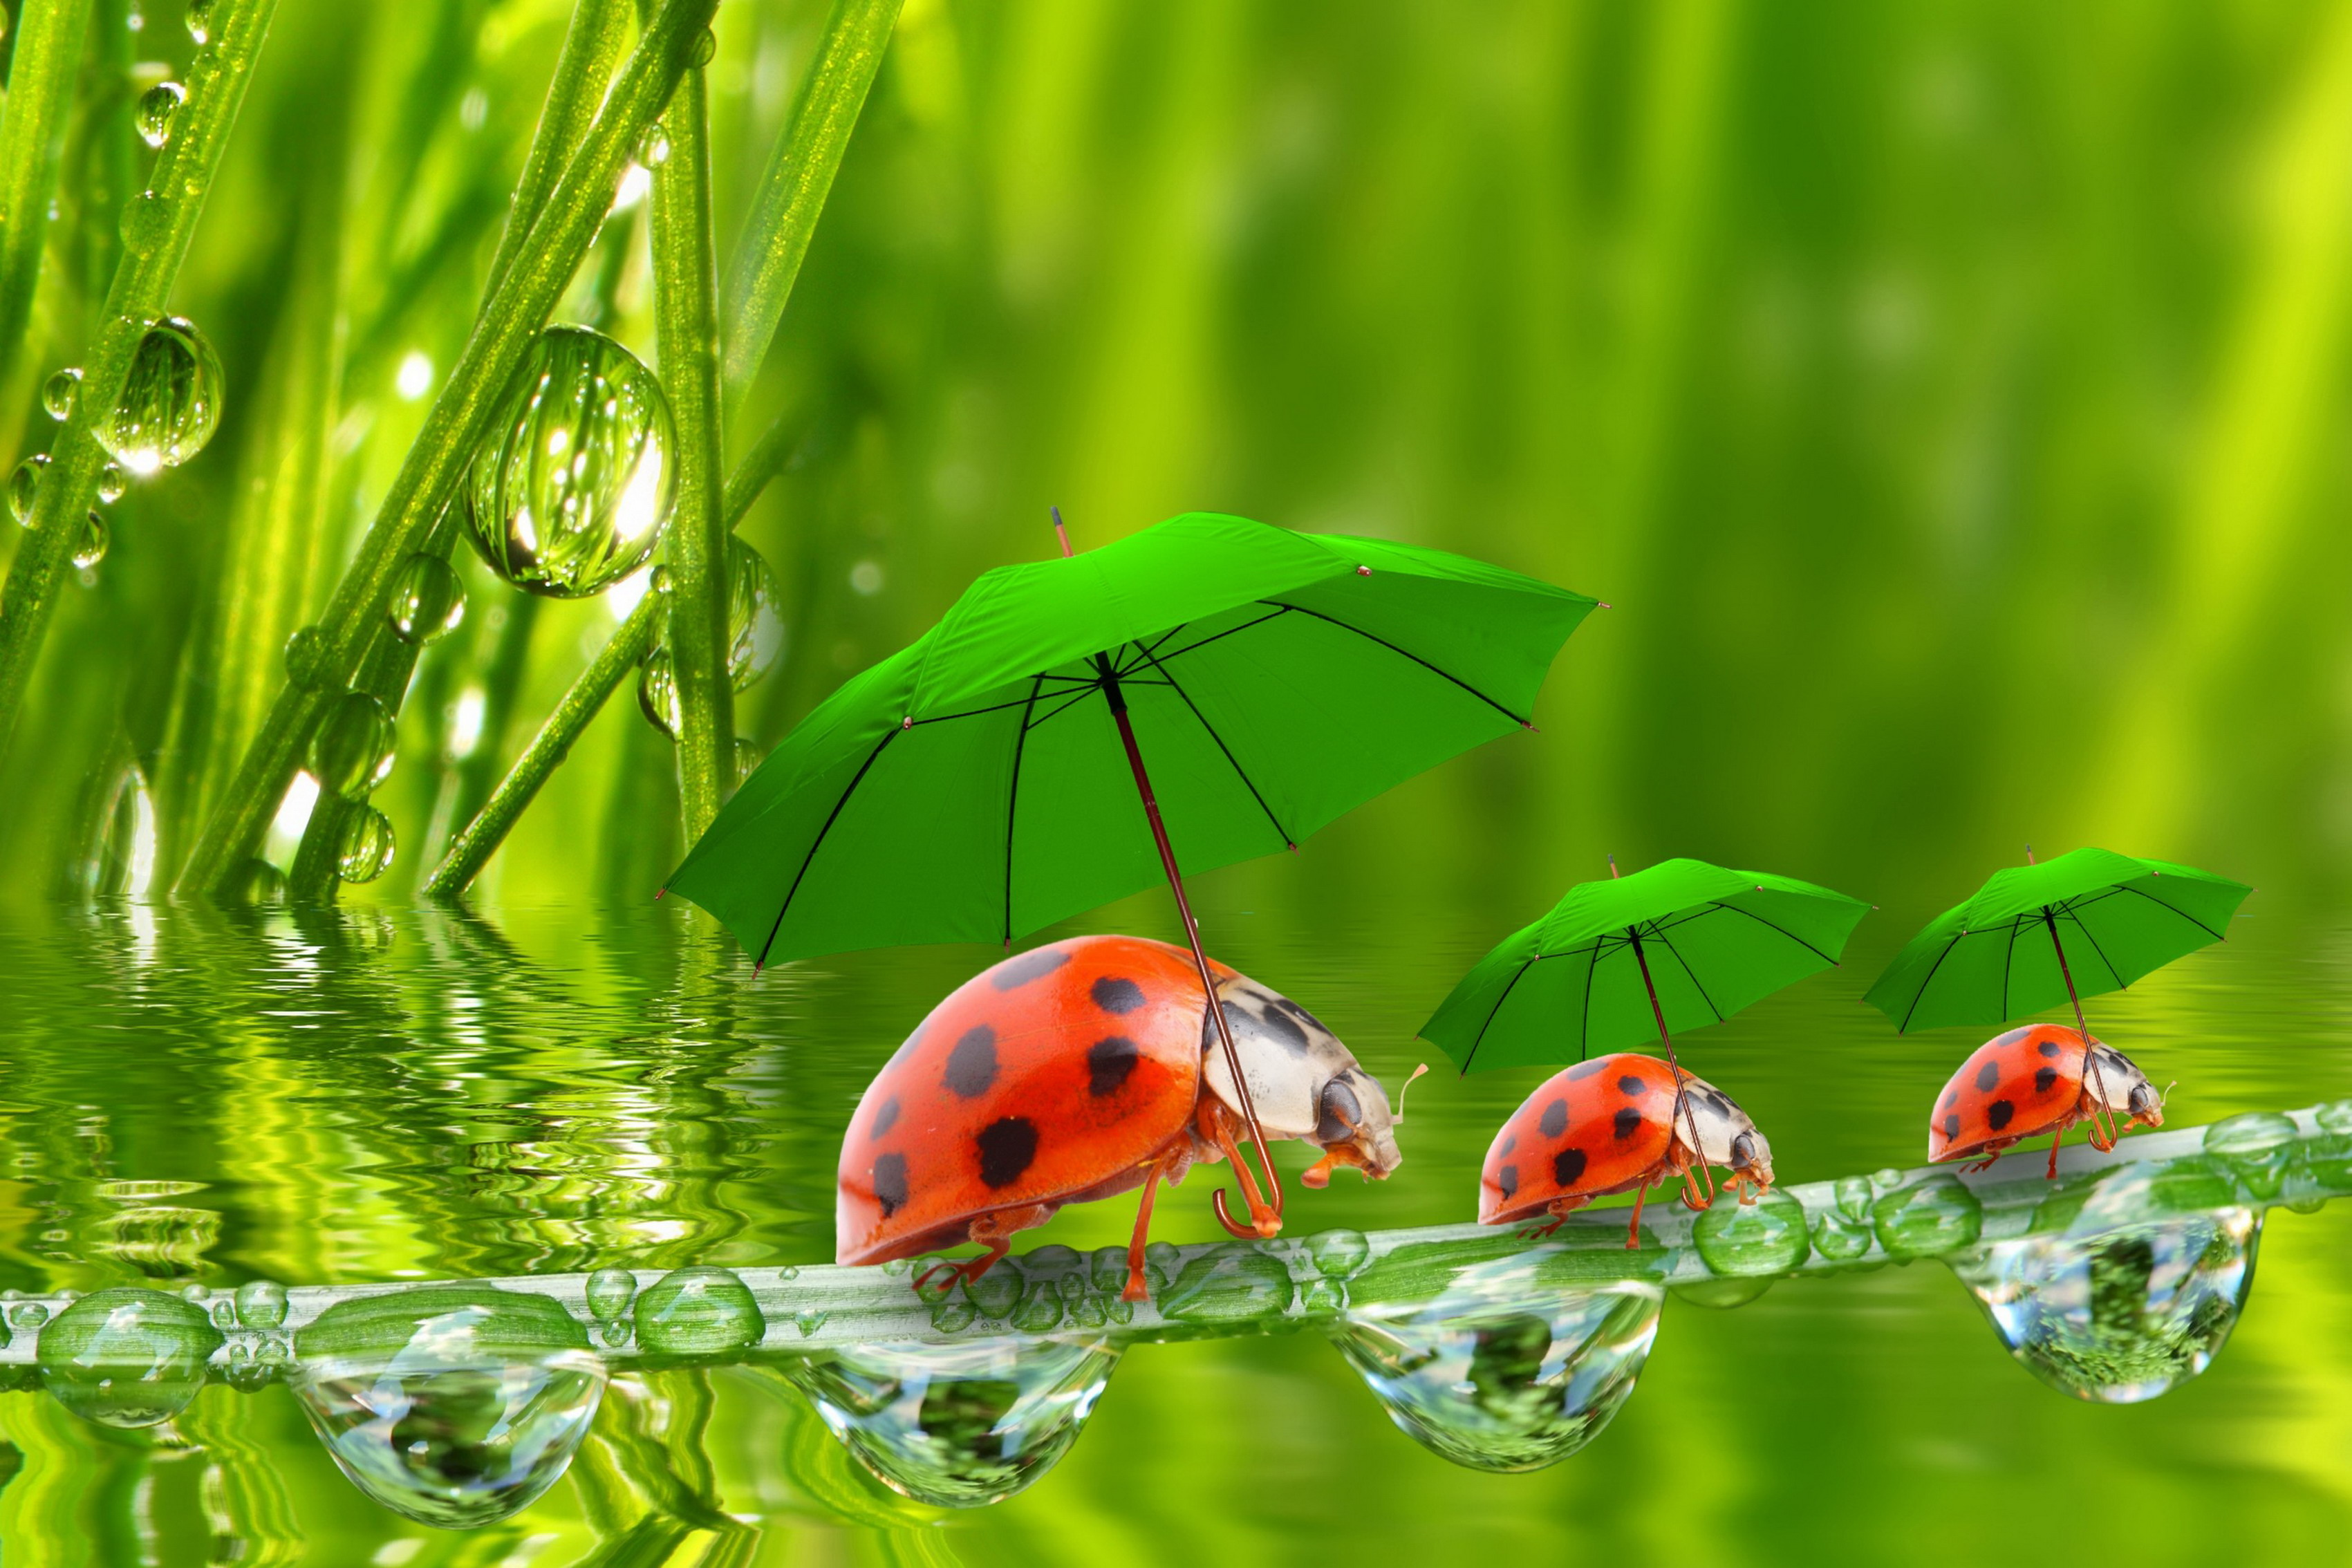 Ladybug Bedroom Decor Compare Prices On Umbrella Posters Online Shopping Buy Low Price